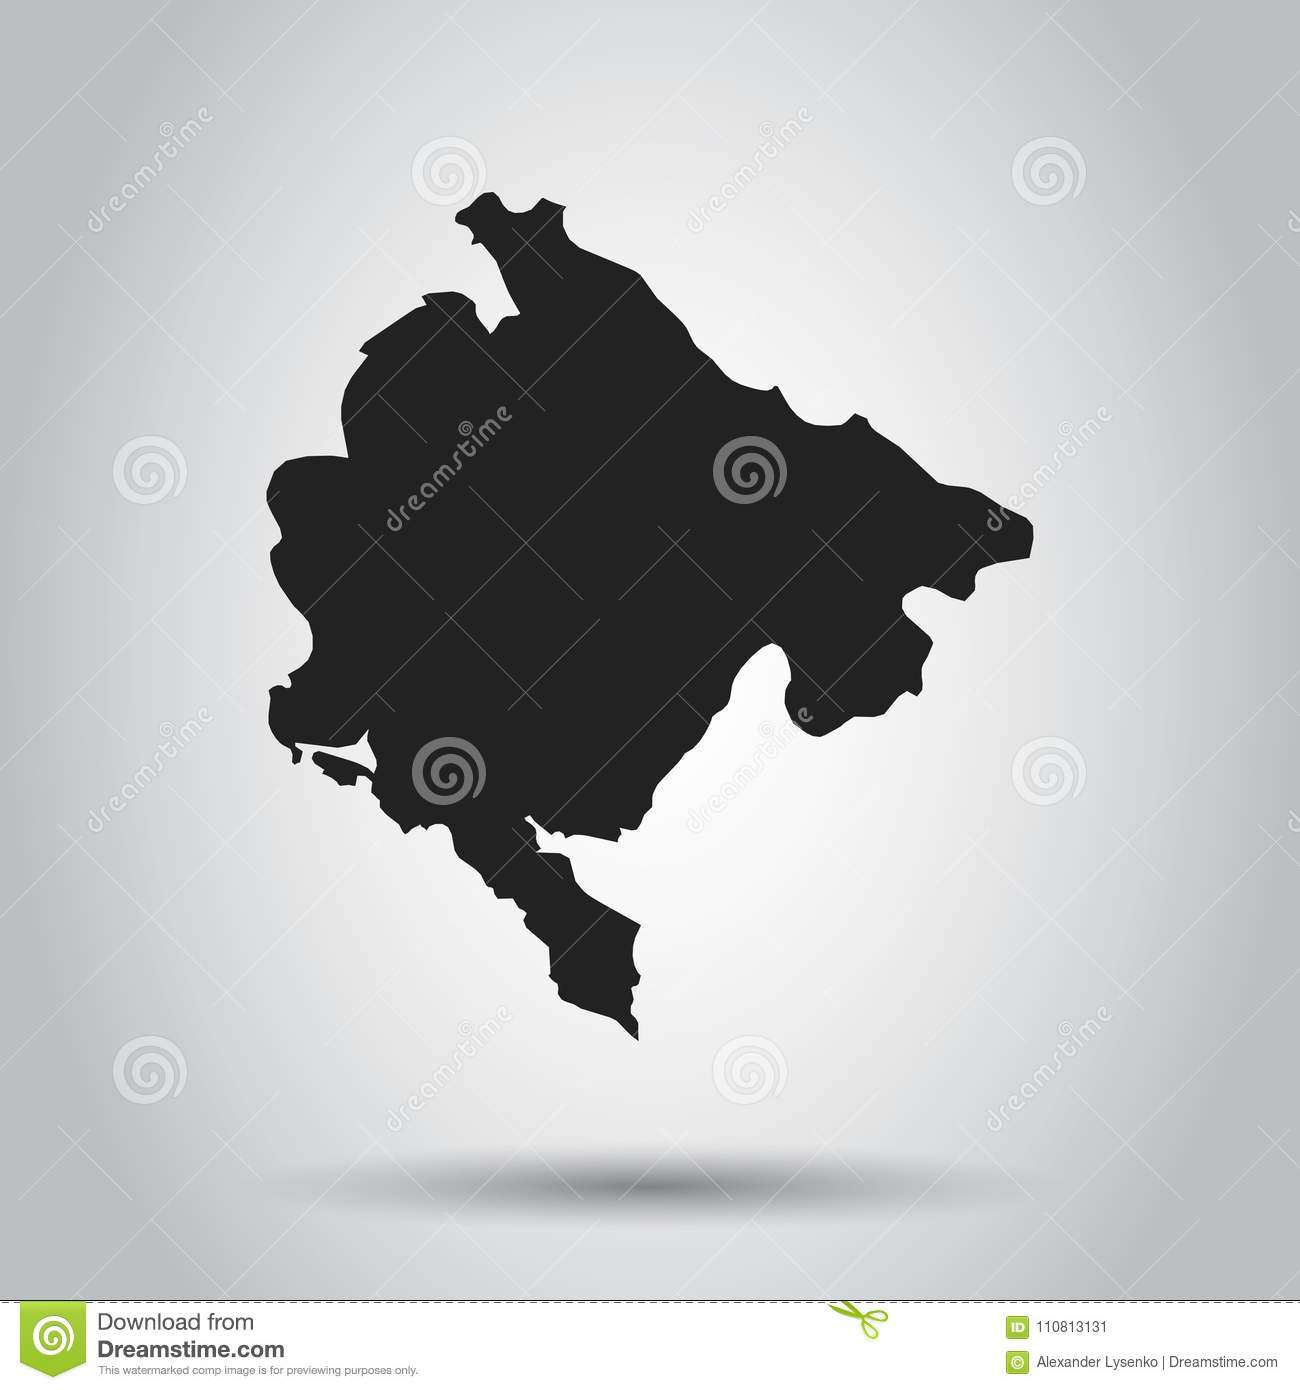 Montenegro vector map black icon on white background stock vector download montenegro vector map black icon on white background stock vector illustration of gumiabroncs Image collections